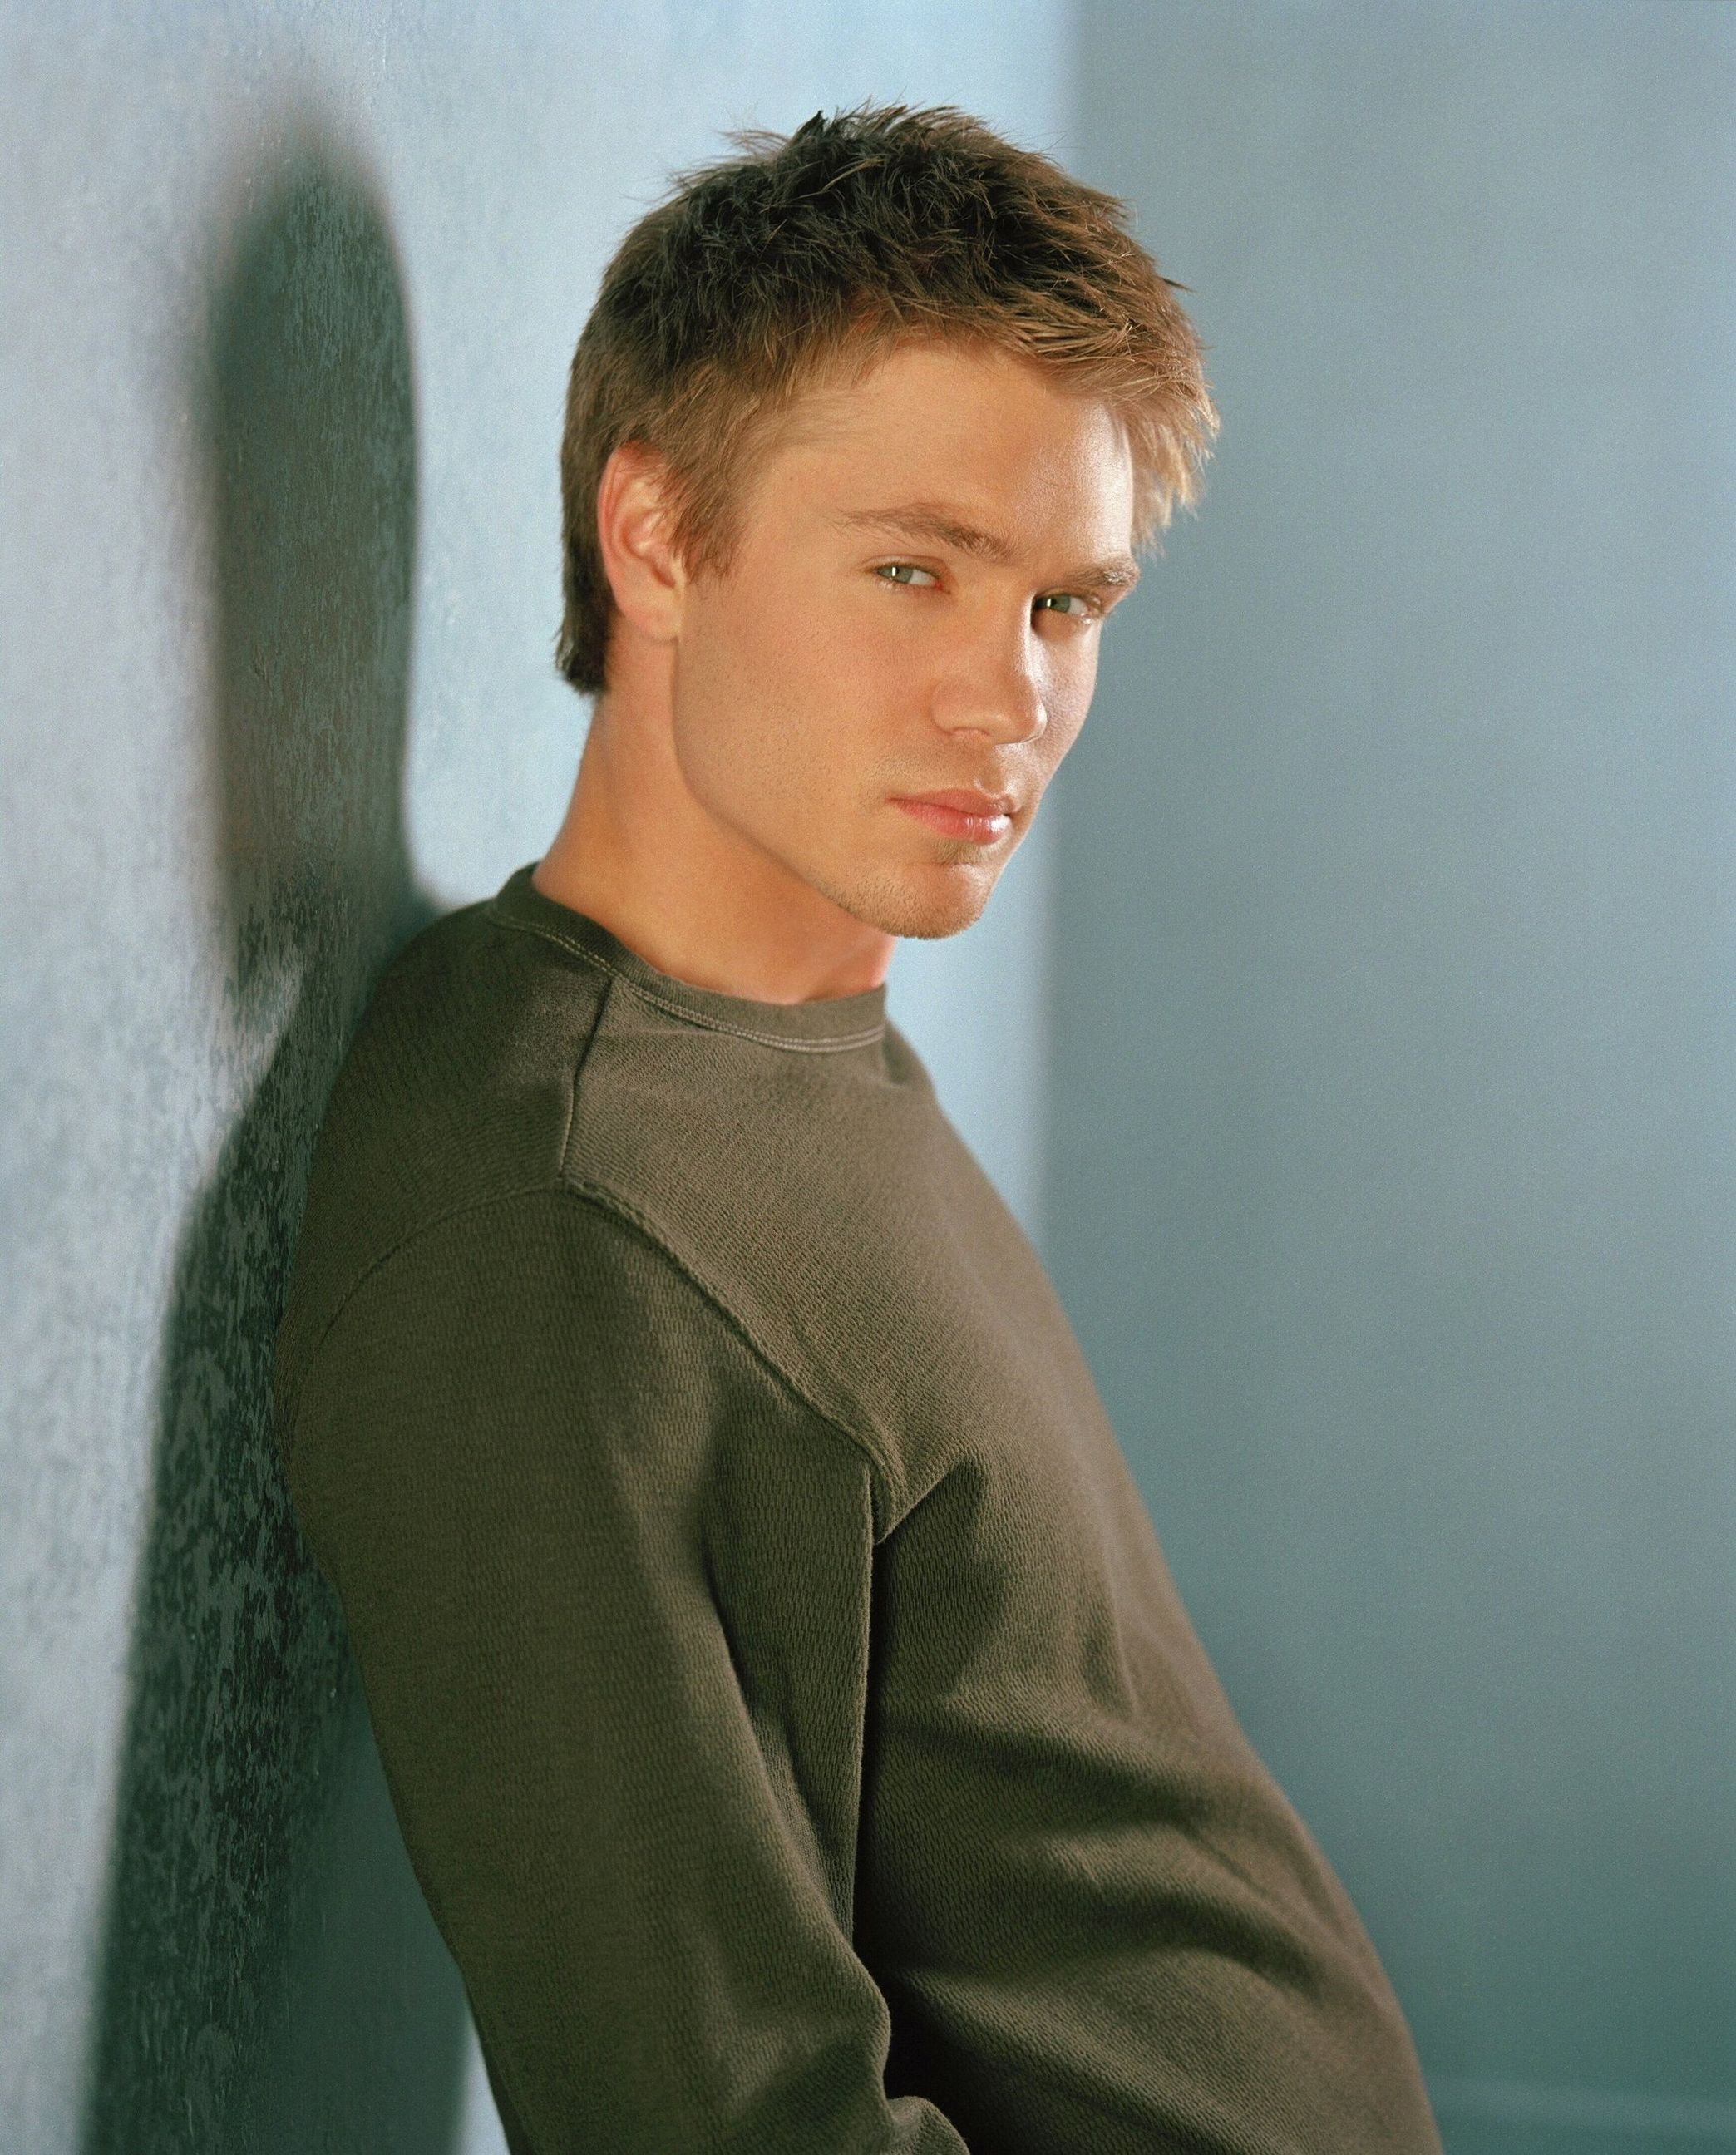 Pic of chad michael murray